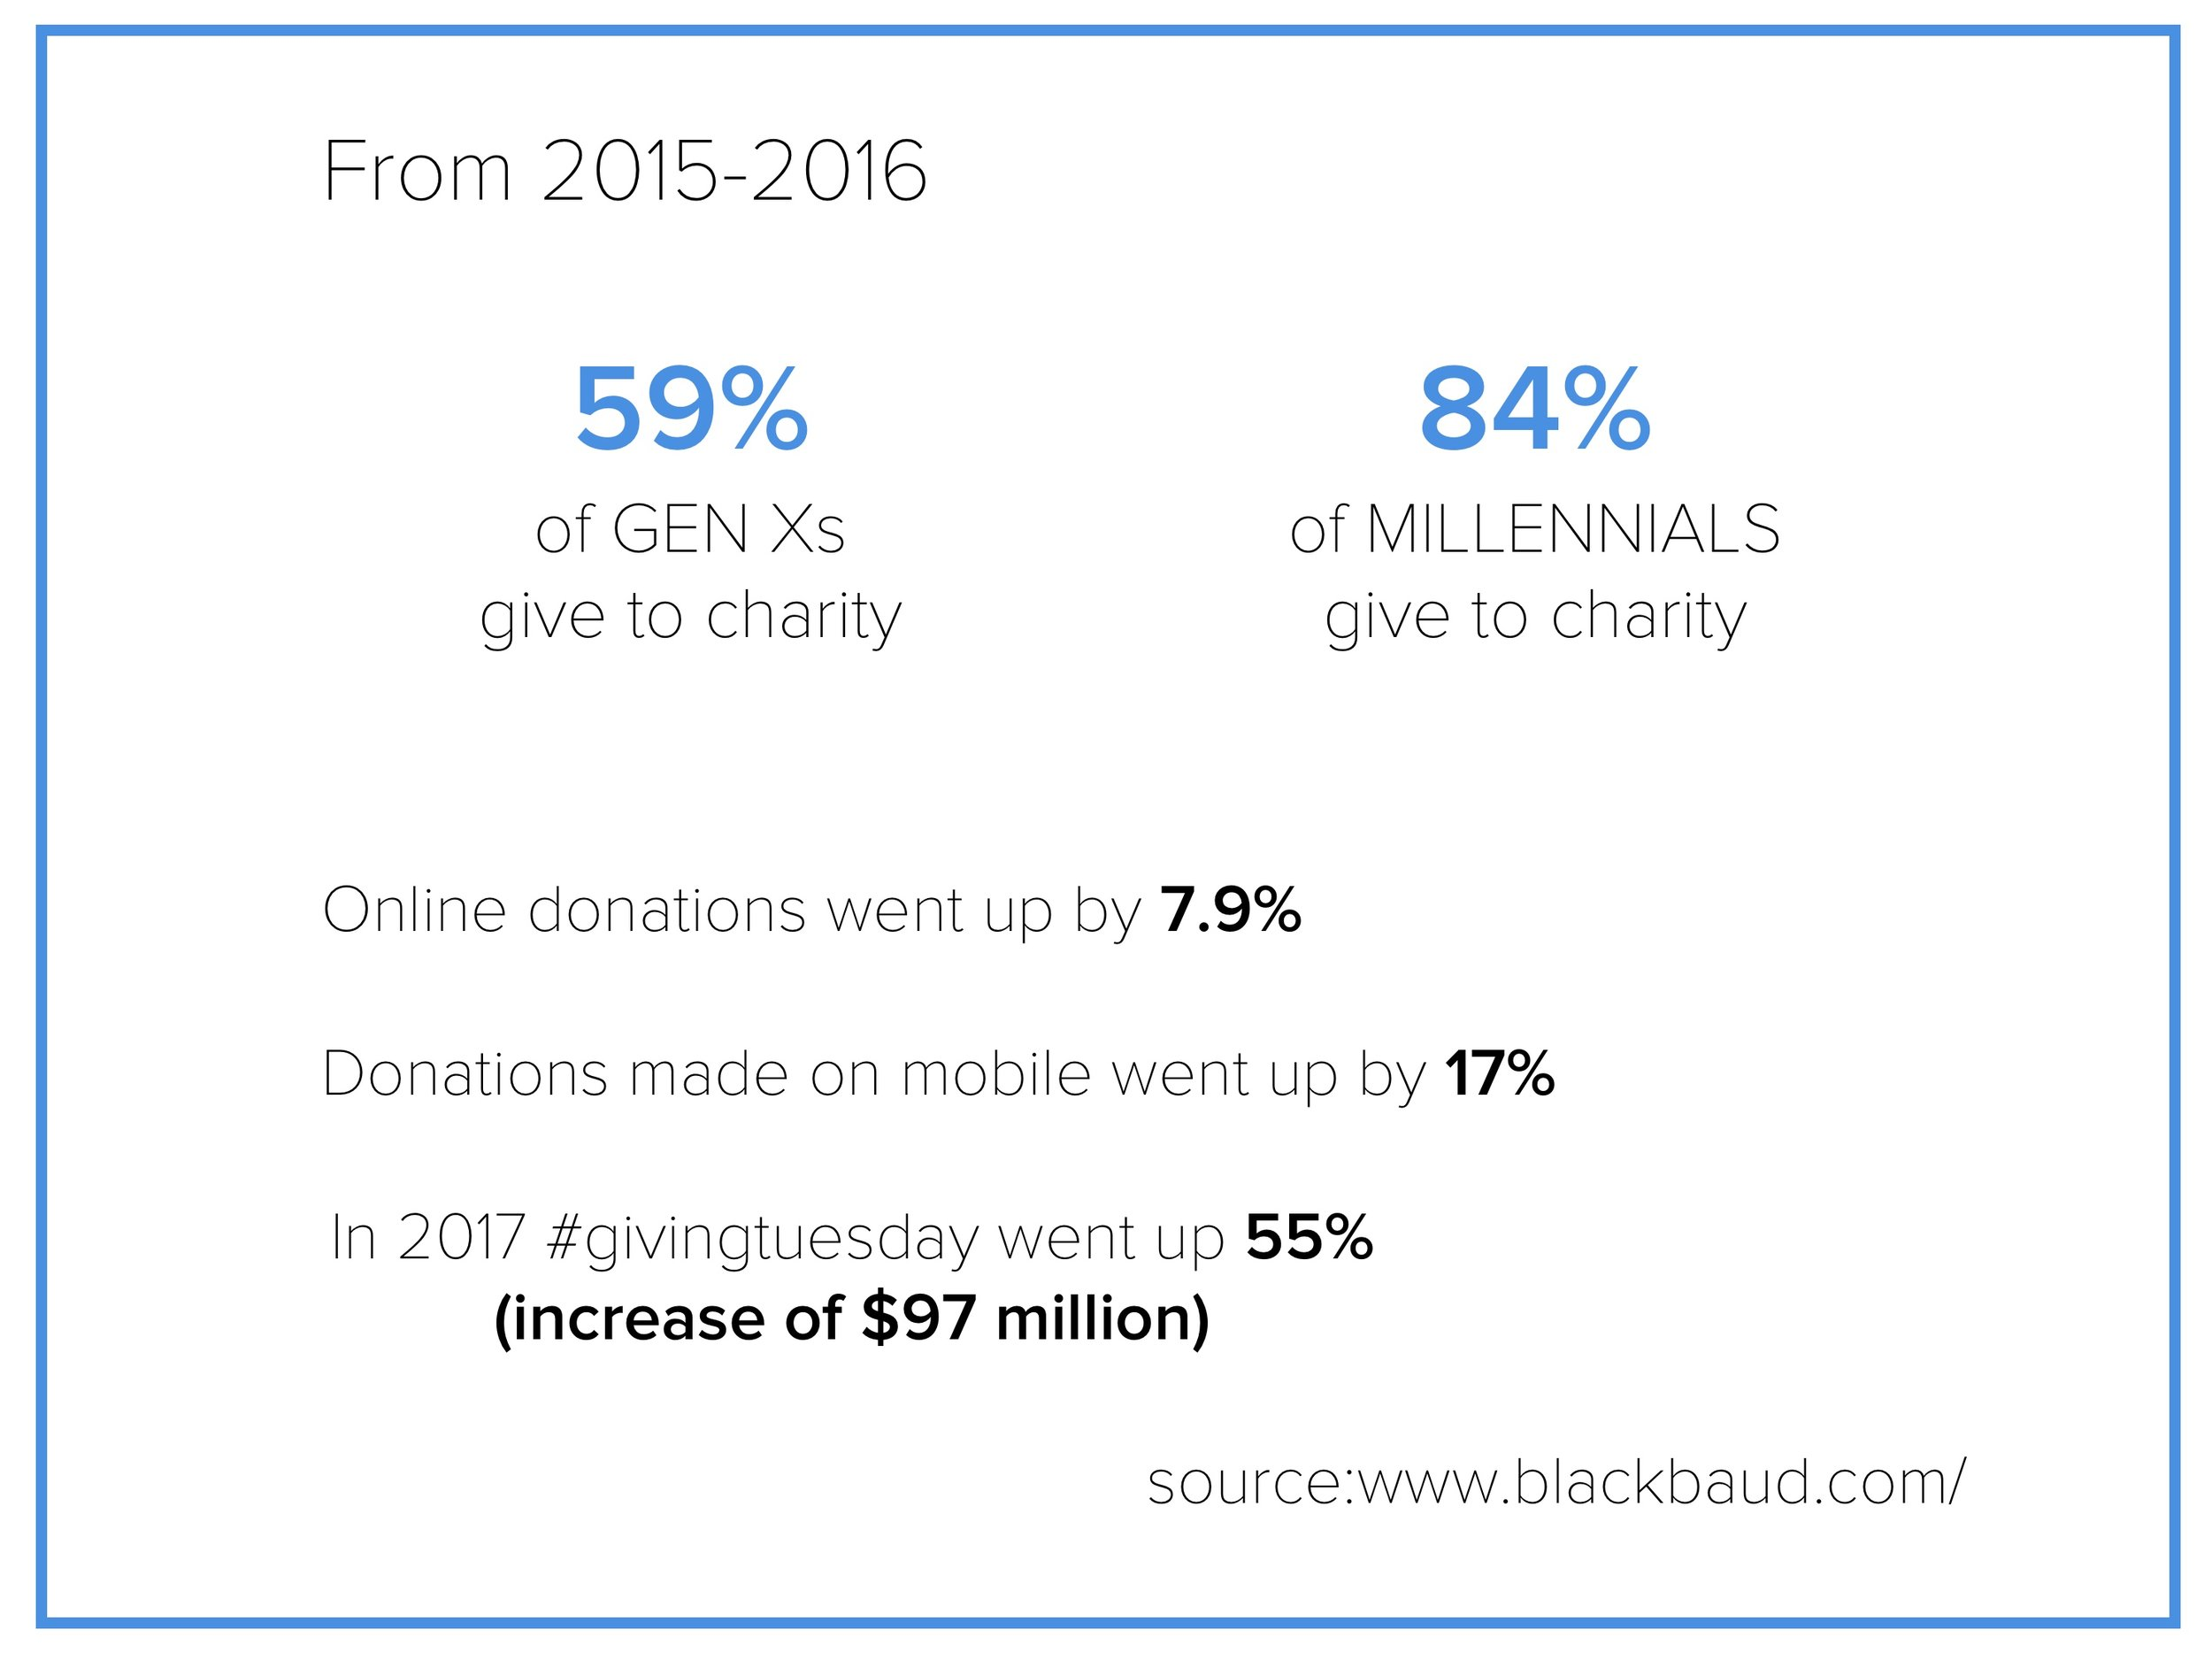 did researched on donation trends to understand the value of adding a donation feature to the app.